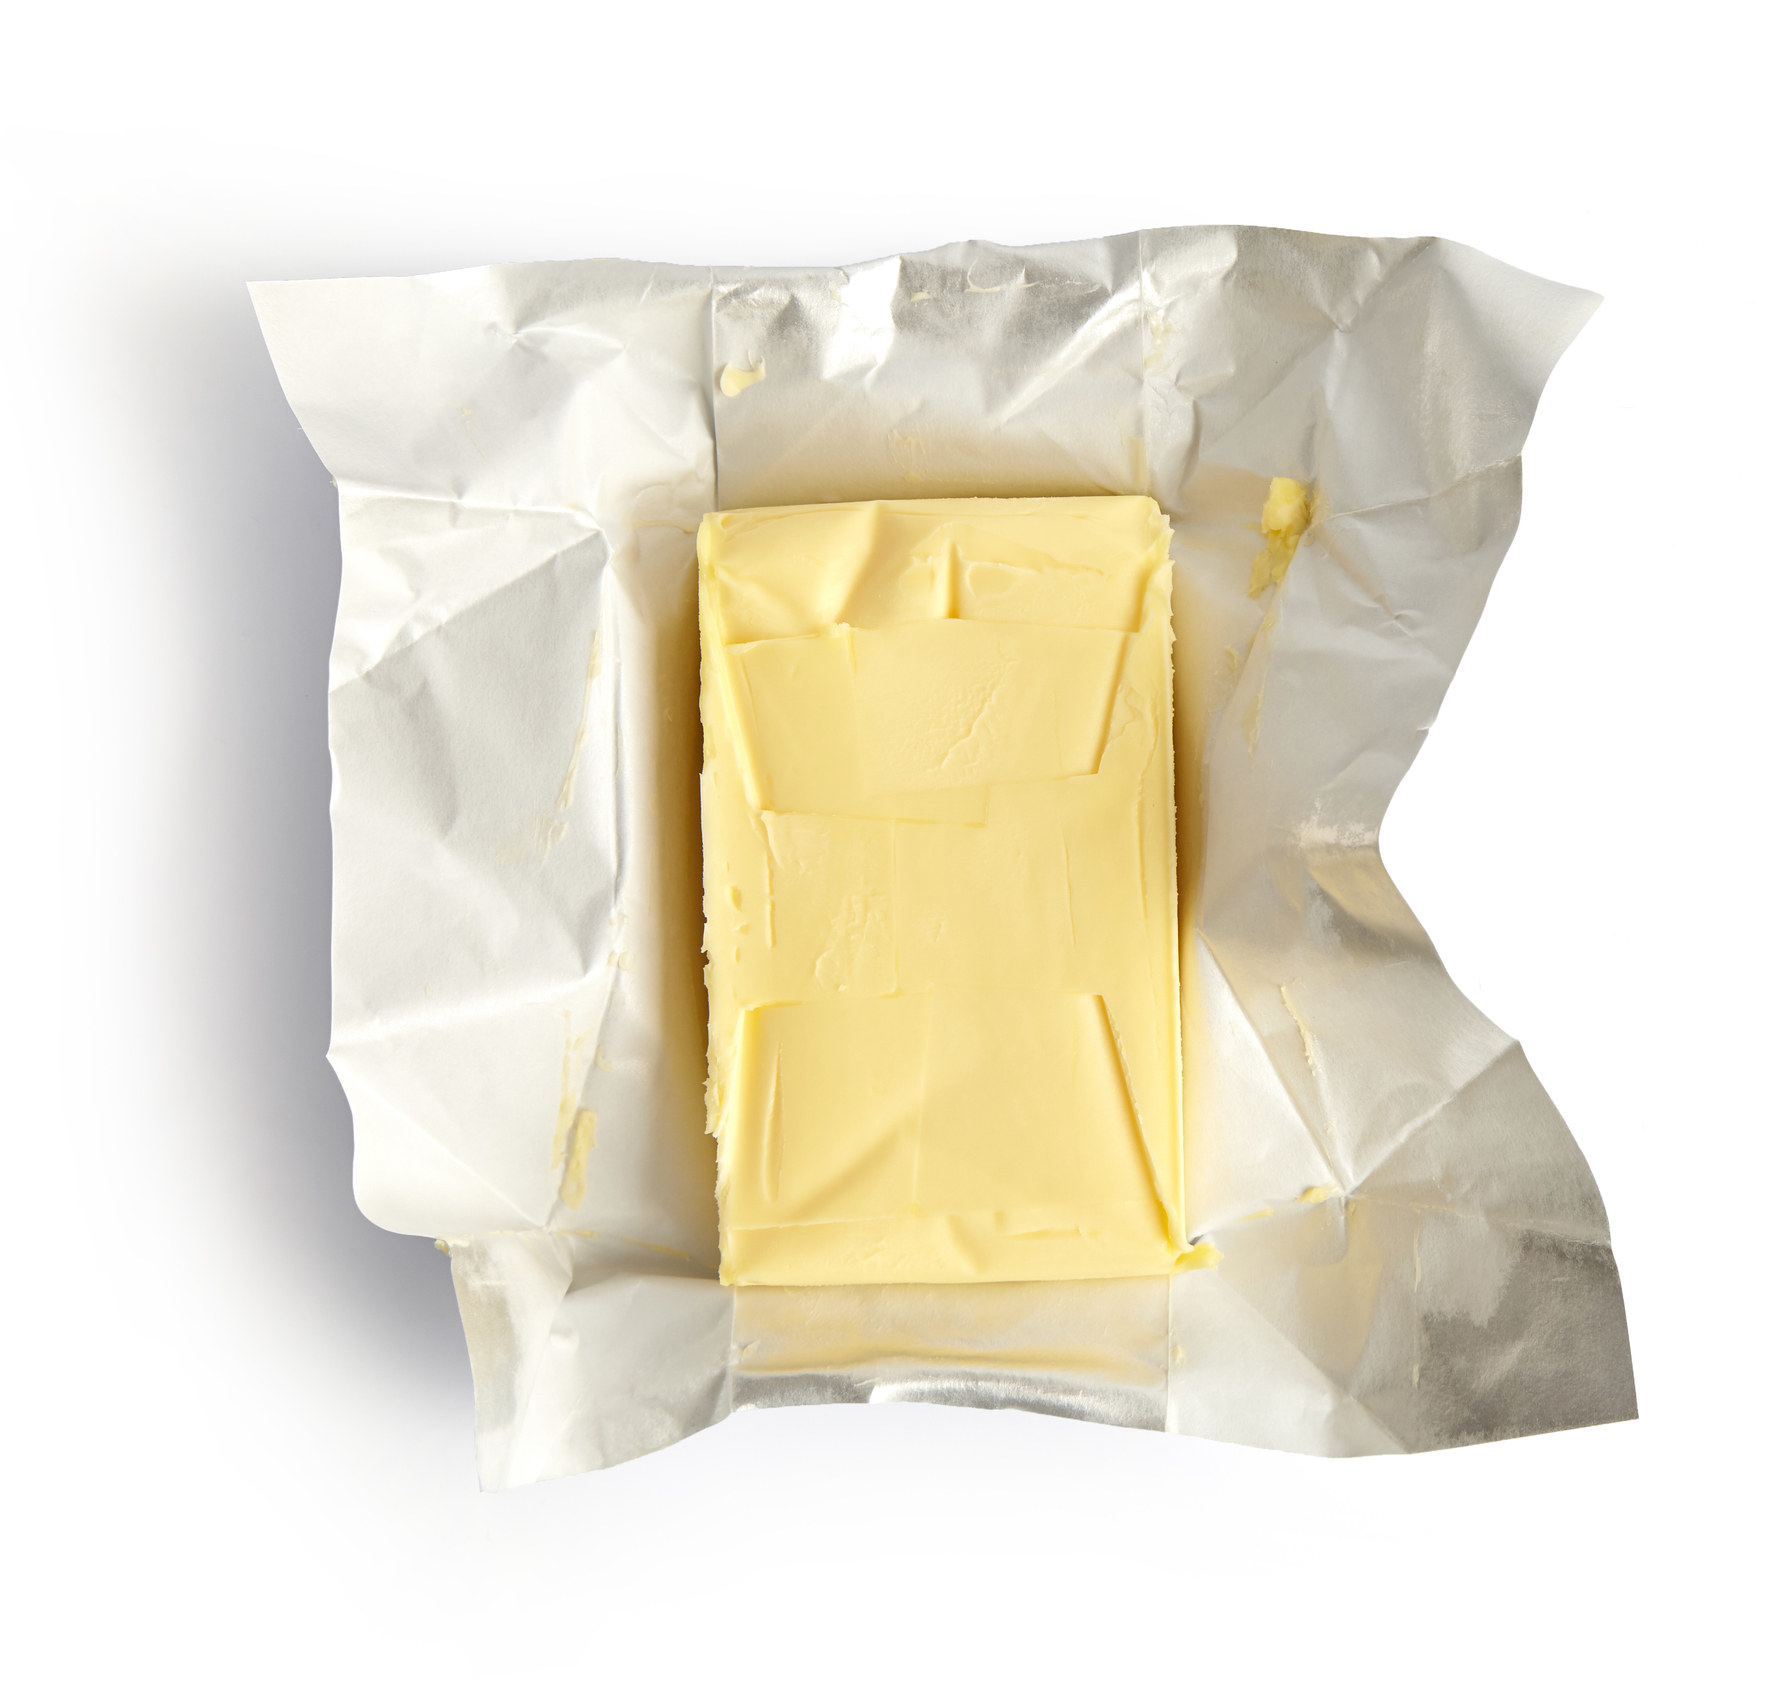 A block of butter on its wrapper